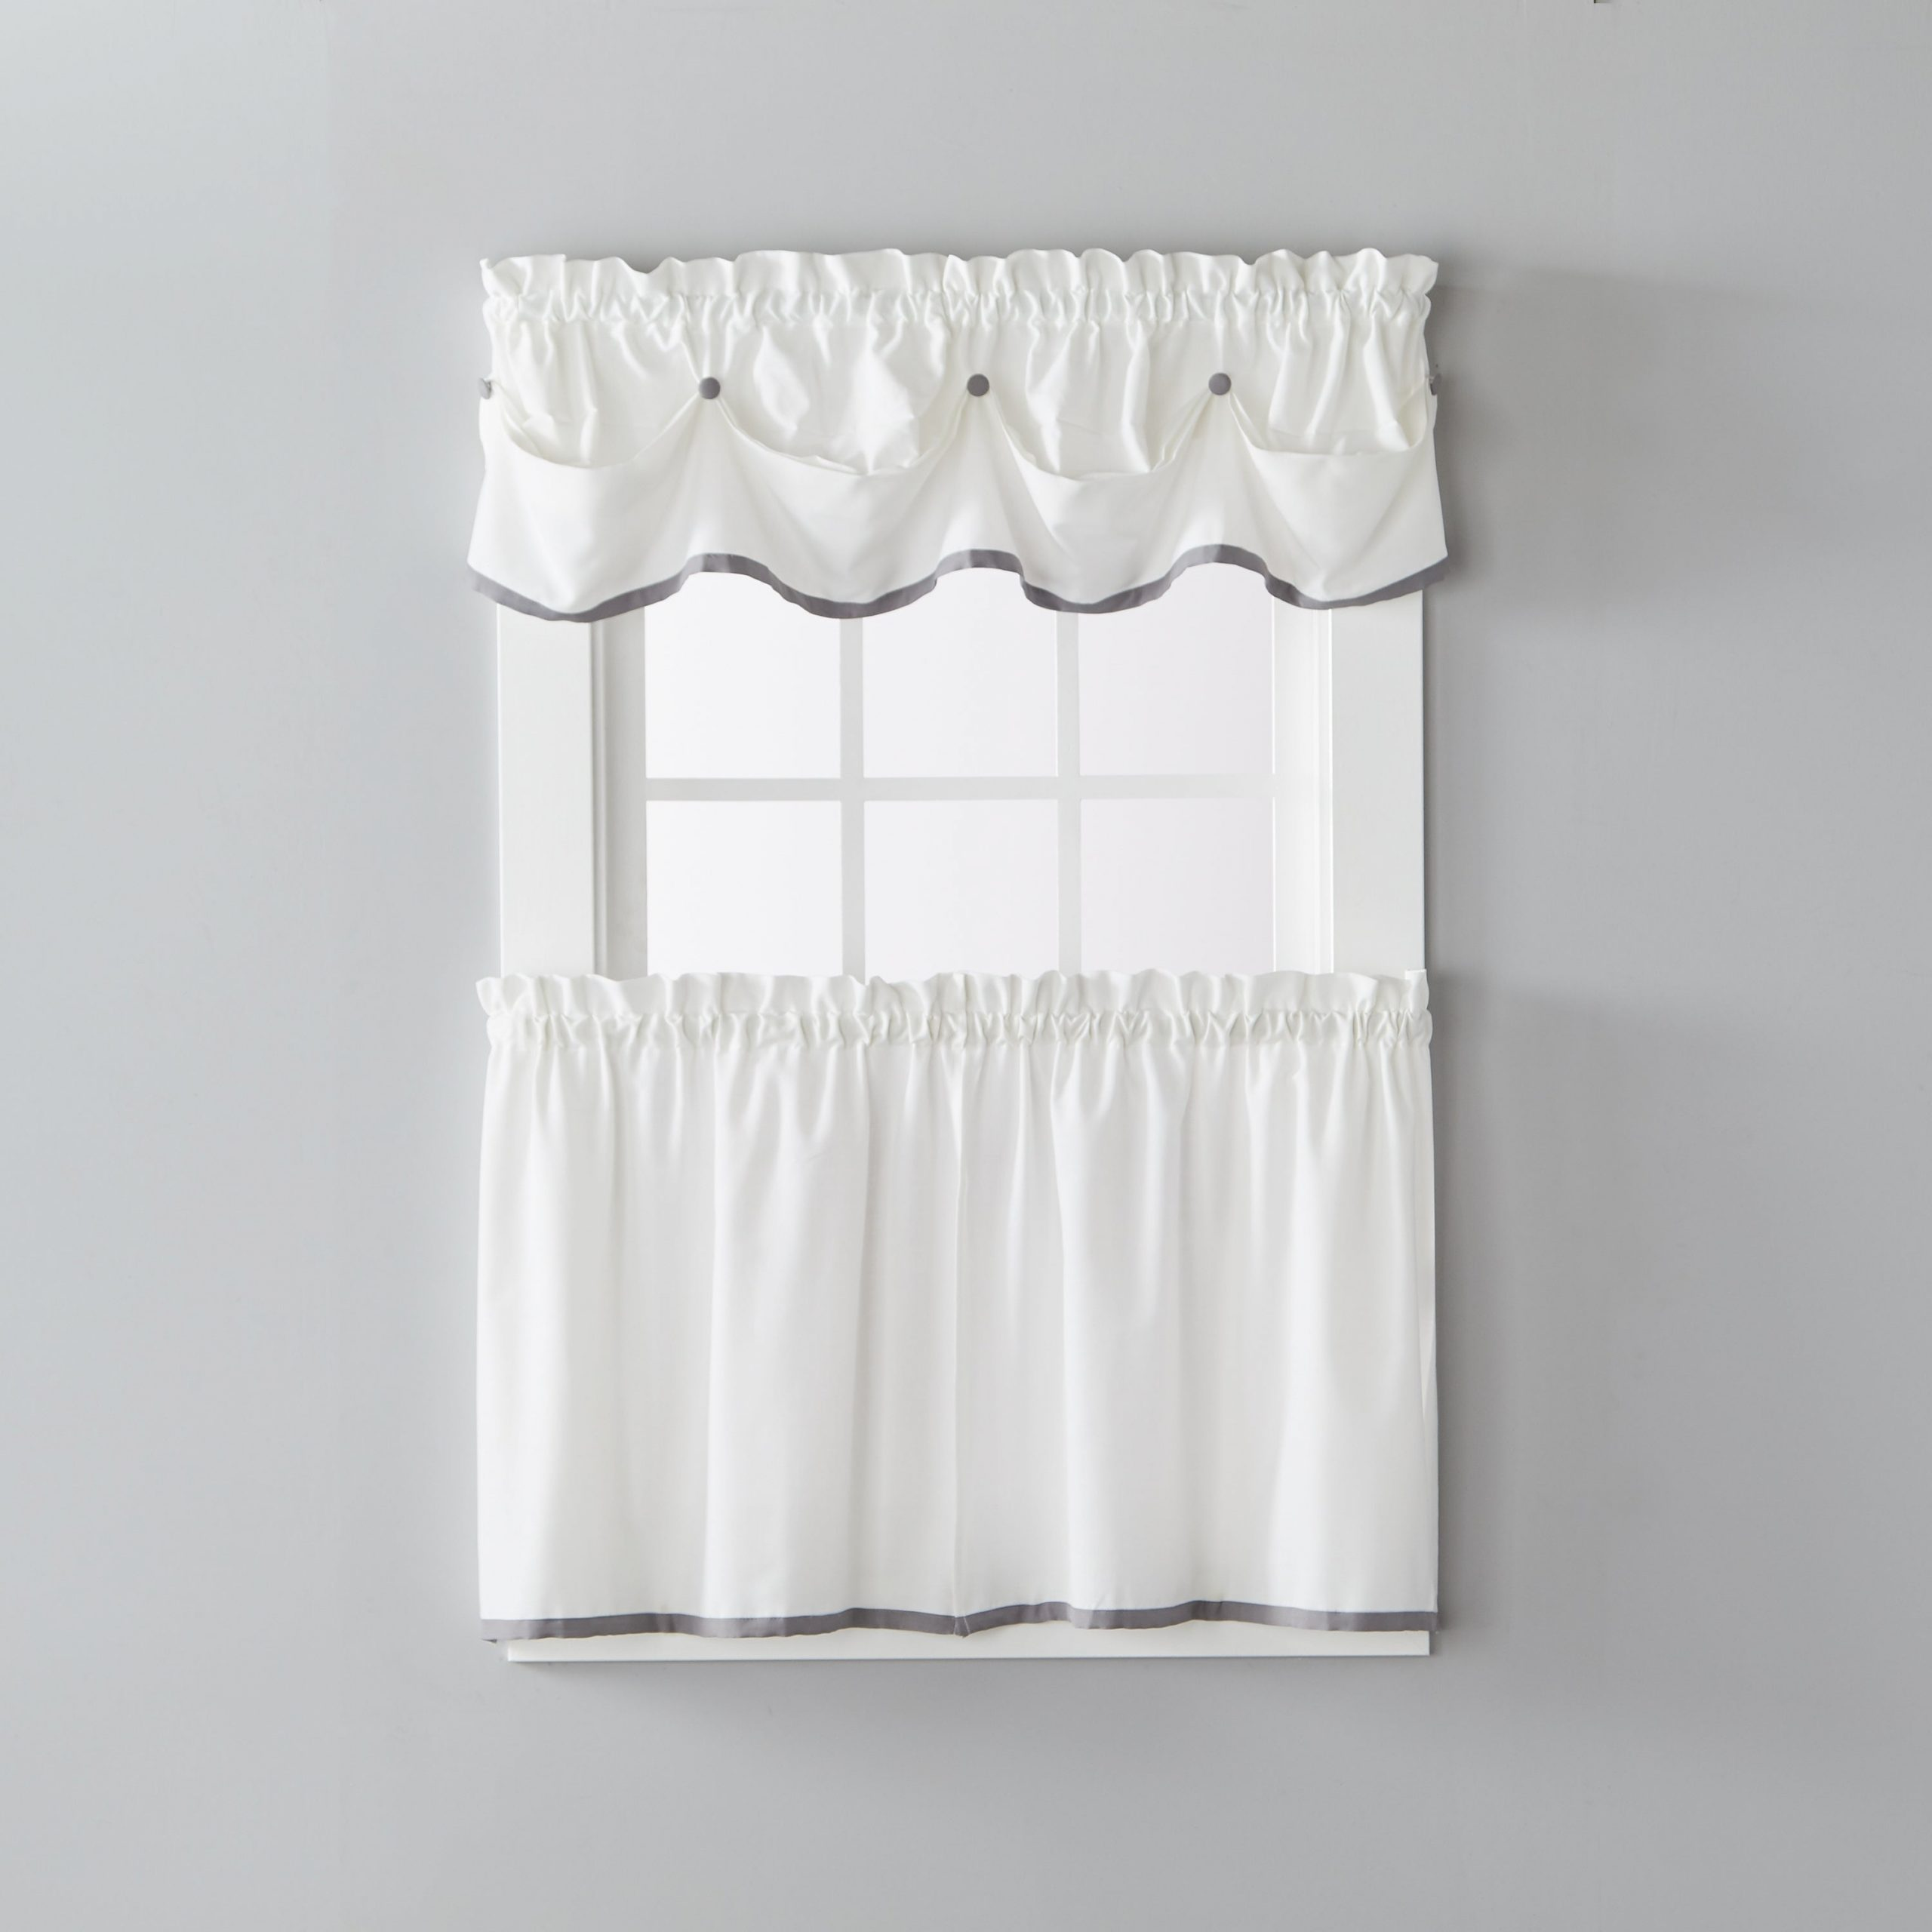 Skl Home Manor 13 Inch Valance In Dove Gray For Flinders Forge 30 Inch Tiers In Dove Grey (View 5 of 20)